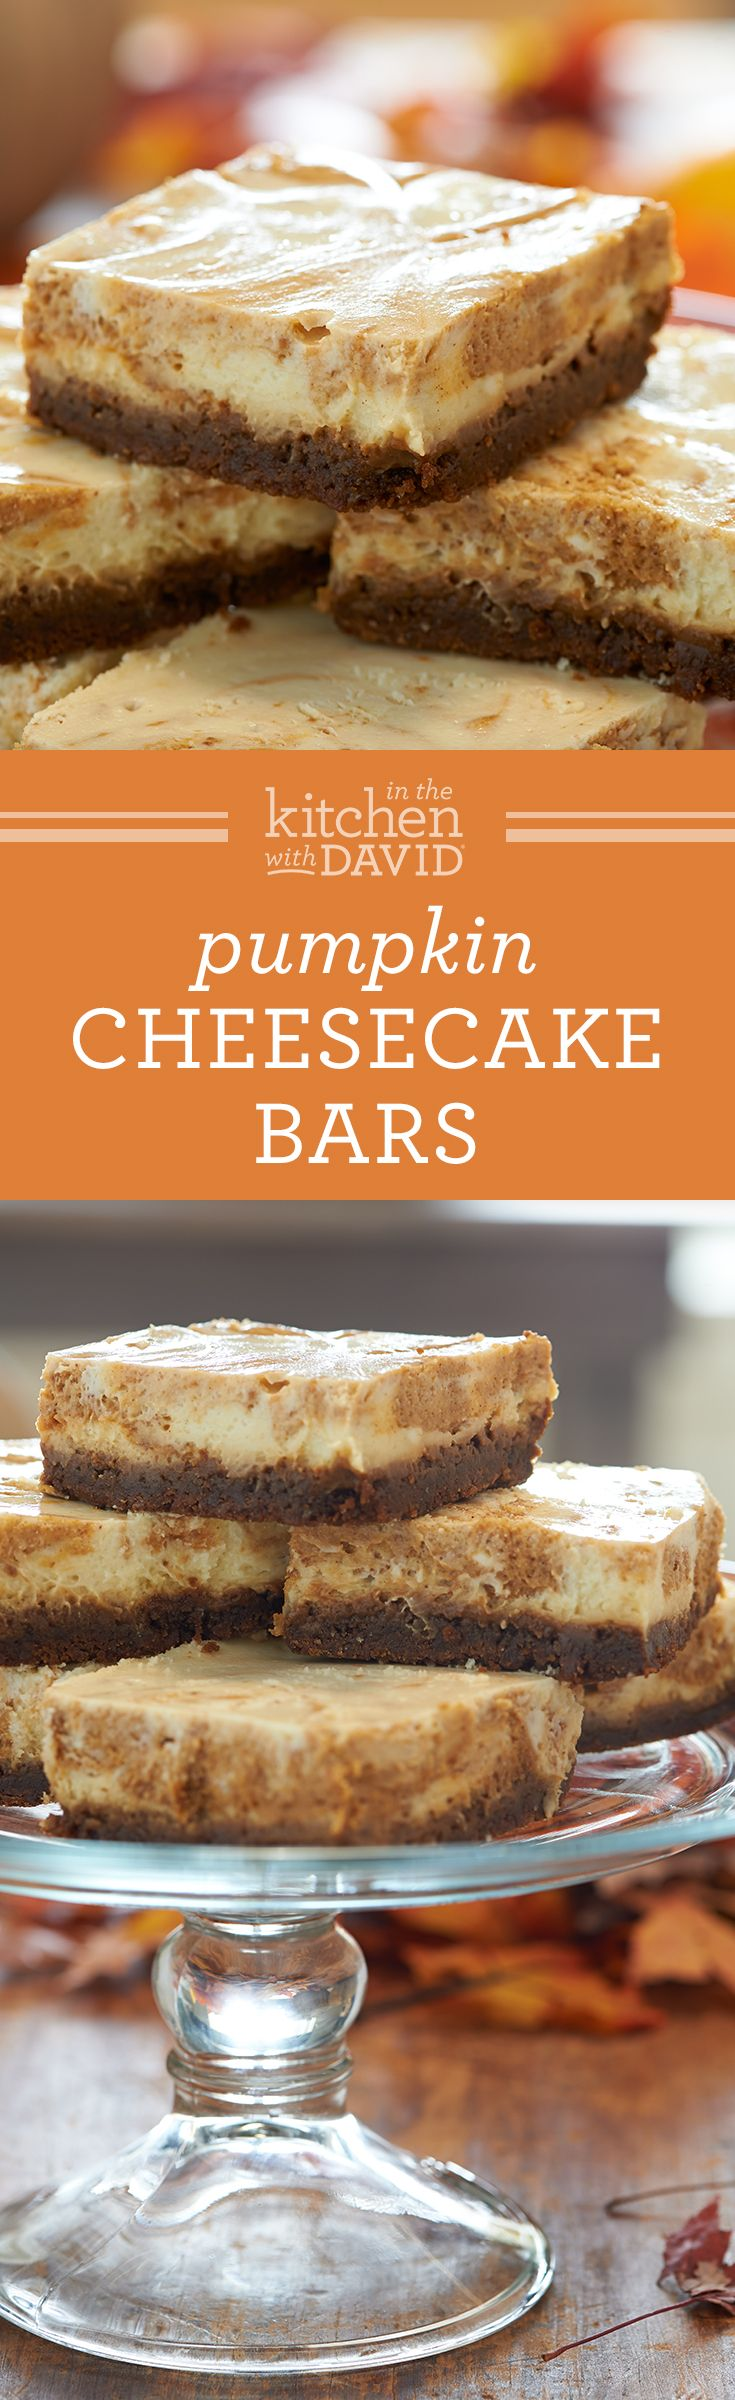 17 Best images about Fall Favorites on Pinterest | Homemade apple ...